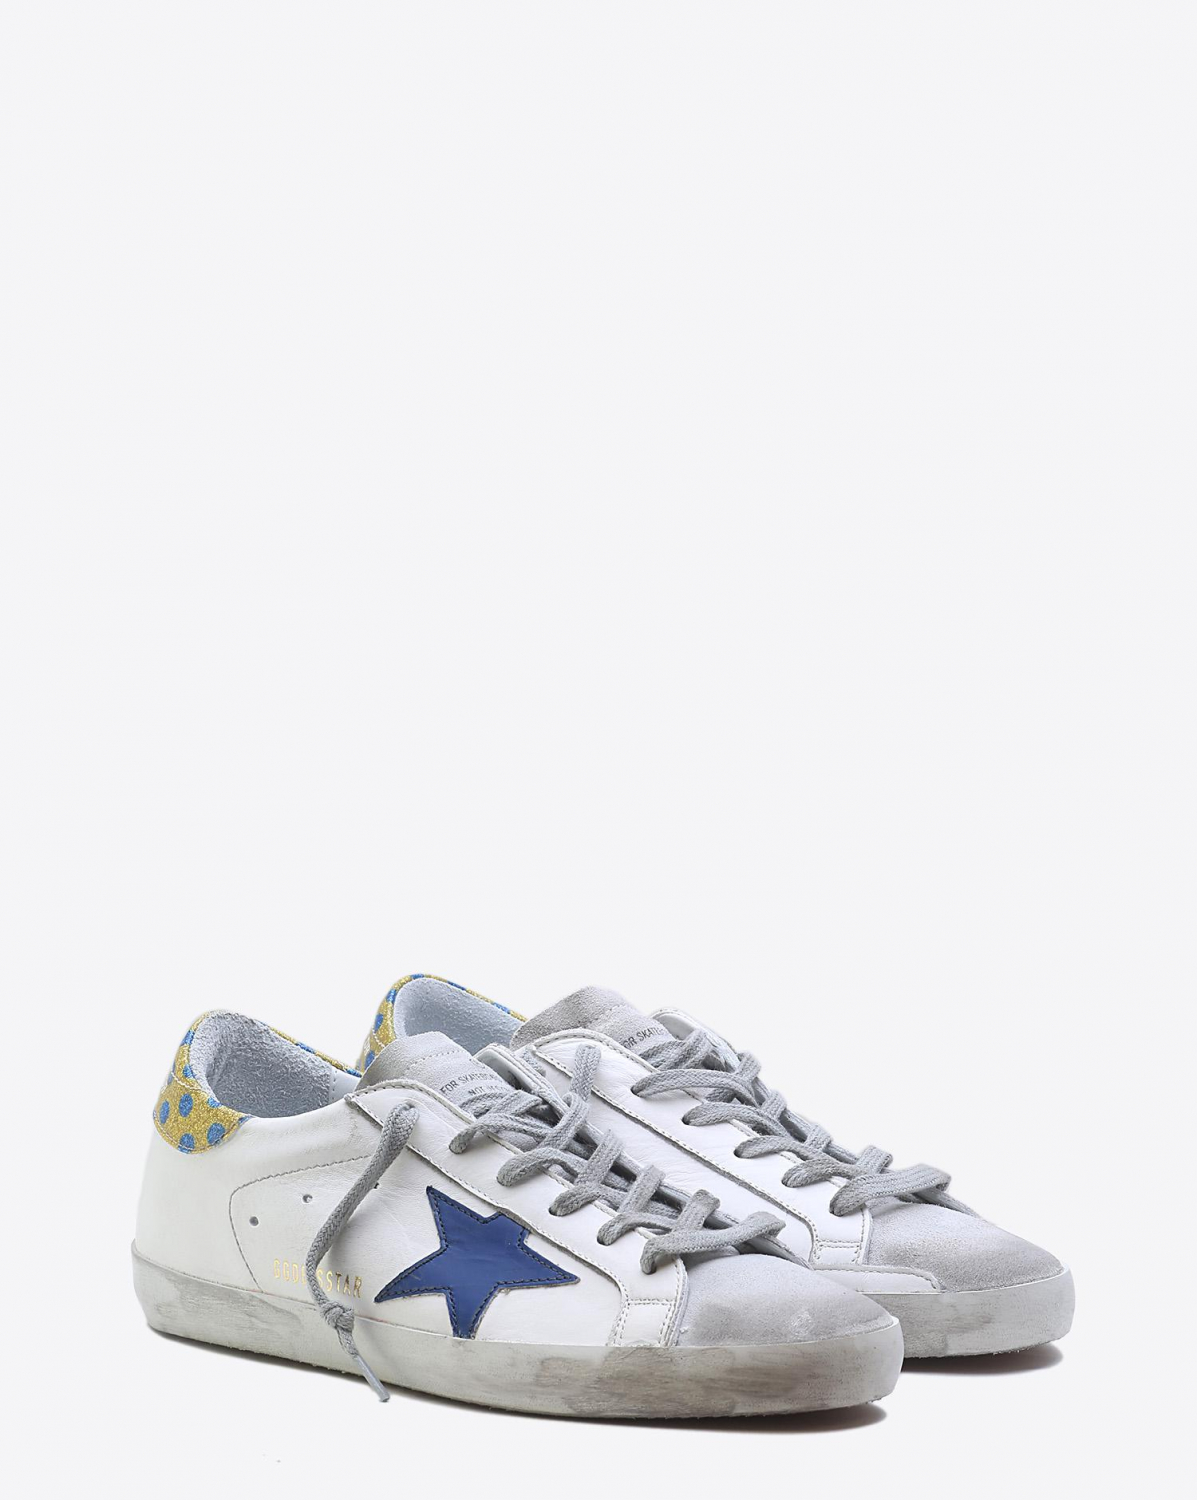 Golden Goose Woman Pré-Collection Sneakers Superstar - White Gold Glitter Blue Pois